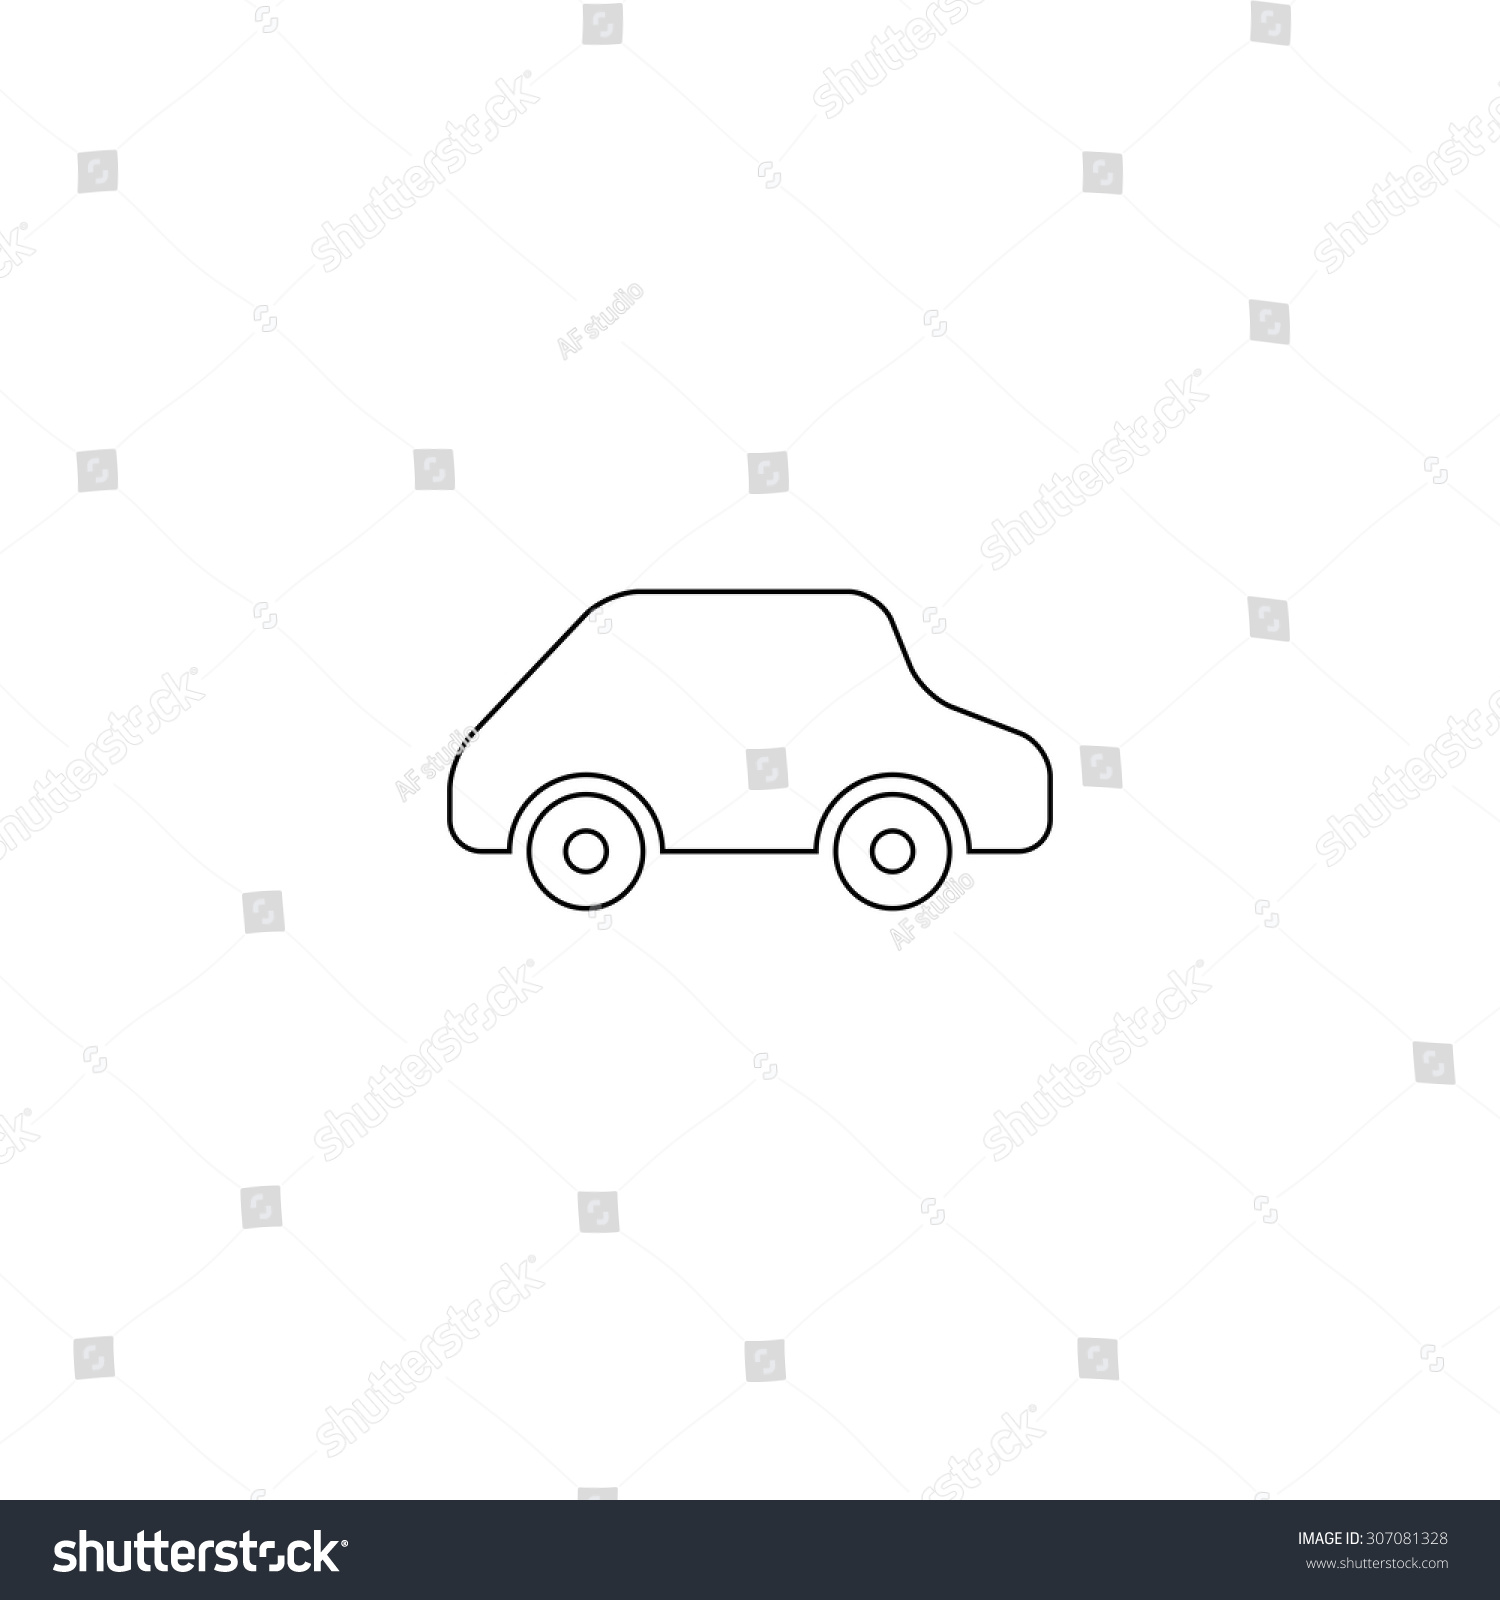 Free Work Invoice Template Download Simple Car Template  Rabitahnet Receipt For Mac And Cheese Word with Toys R Us Gift Receipt Lookup Word Toy Car Logo Template Outline Black Stock Vector  Invoice  Templates Sears Return No Receipt